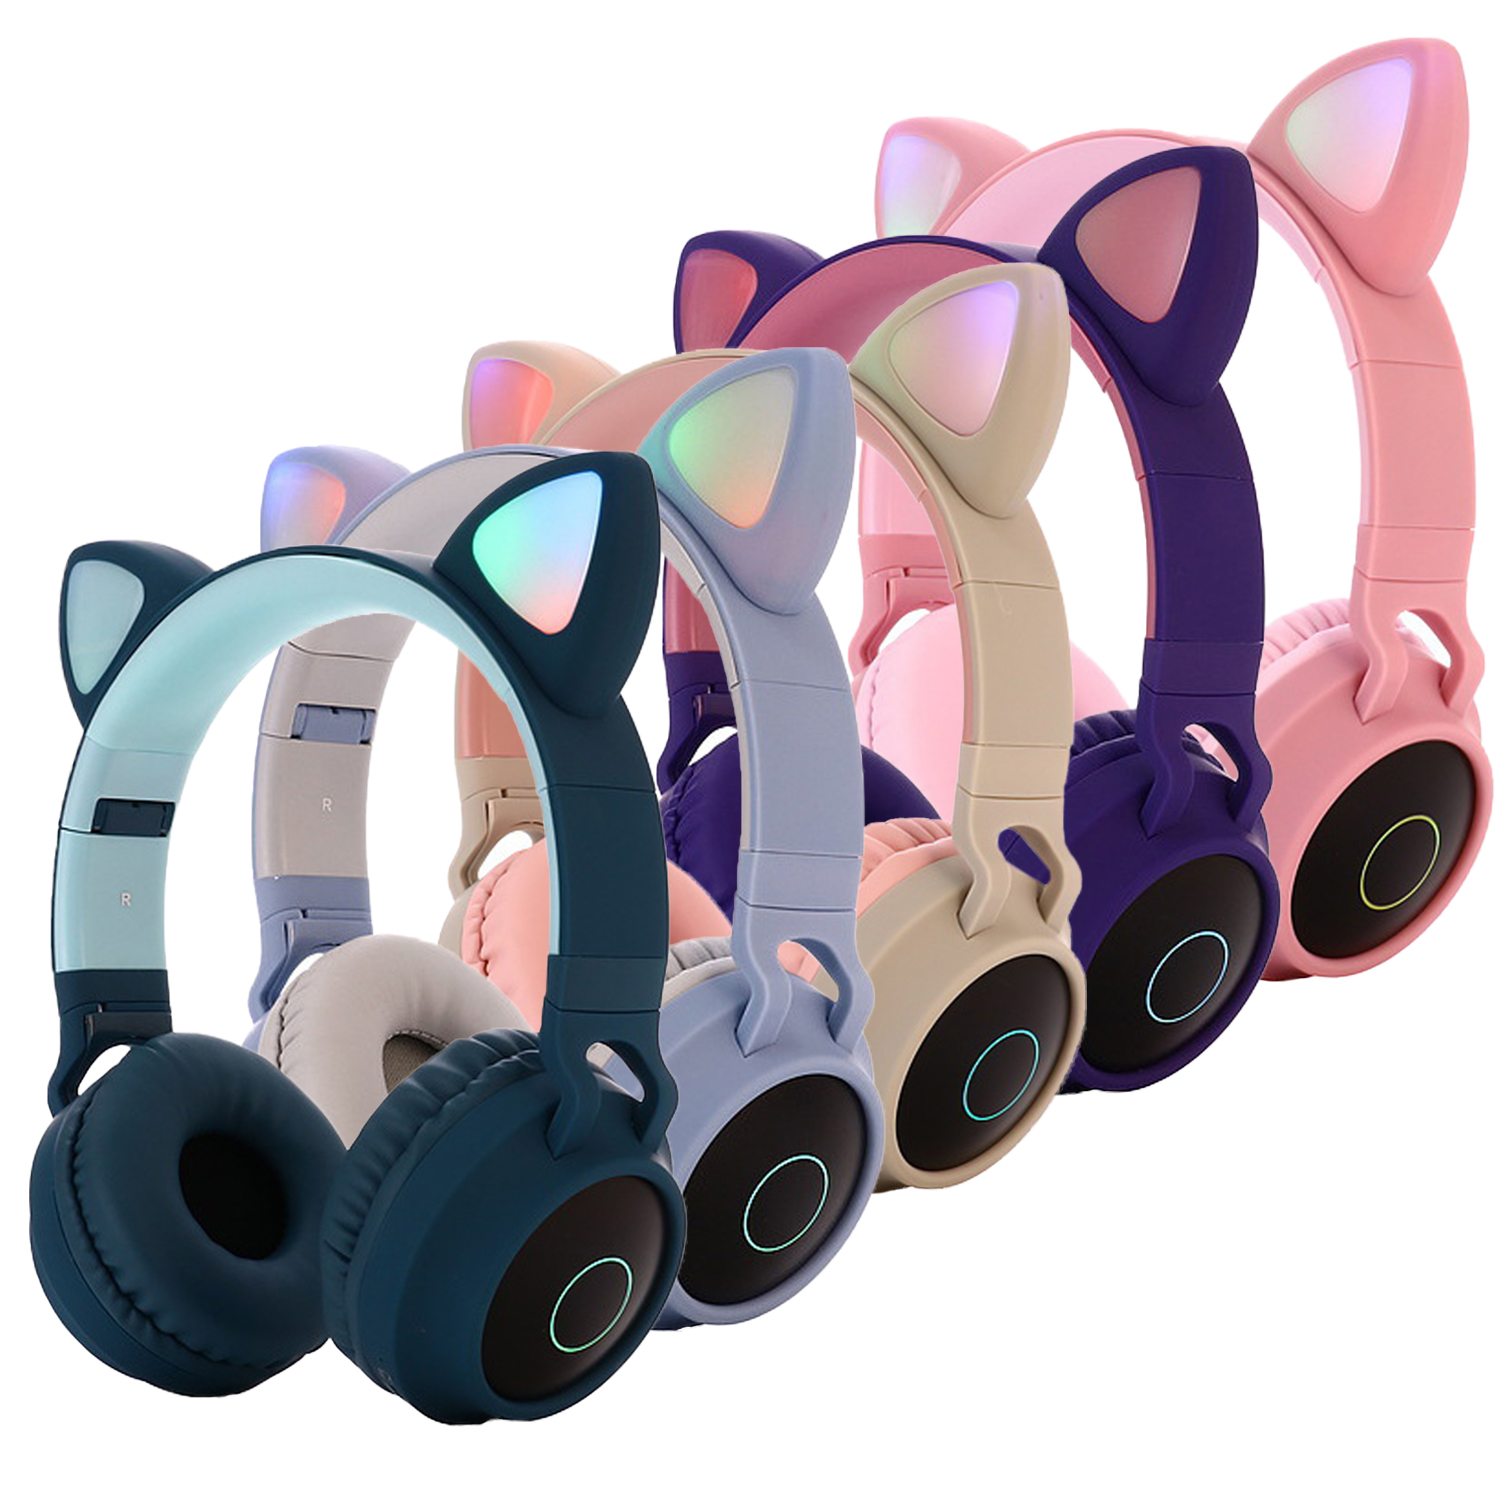 Foldable Cute Cat Ear Over-Ear Wireless 5.0 Bluetooth Headphones With LED Light For School Travel Plane Birthday Christmas Gift